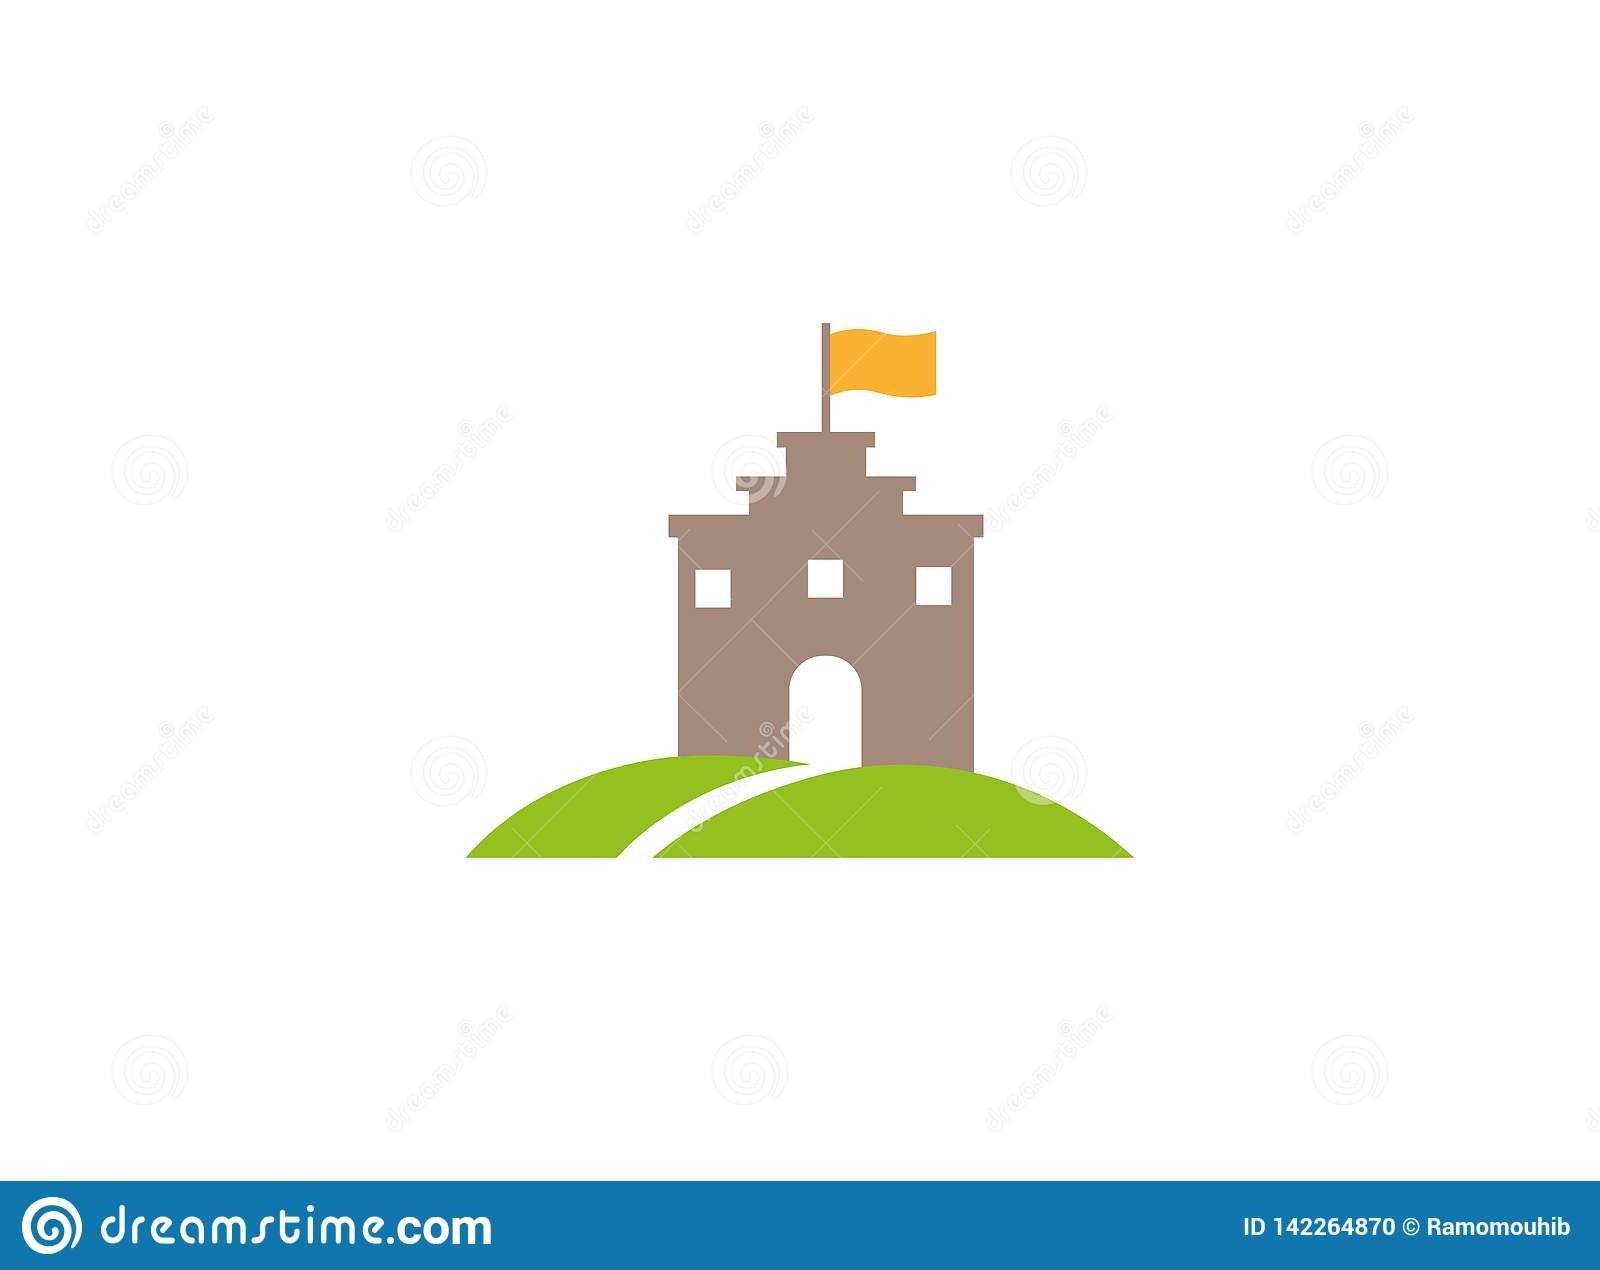 Old Castle Tower in a green plateau with a flag on the top and road to big door and windows for logo design